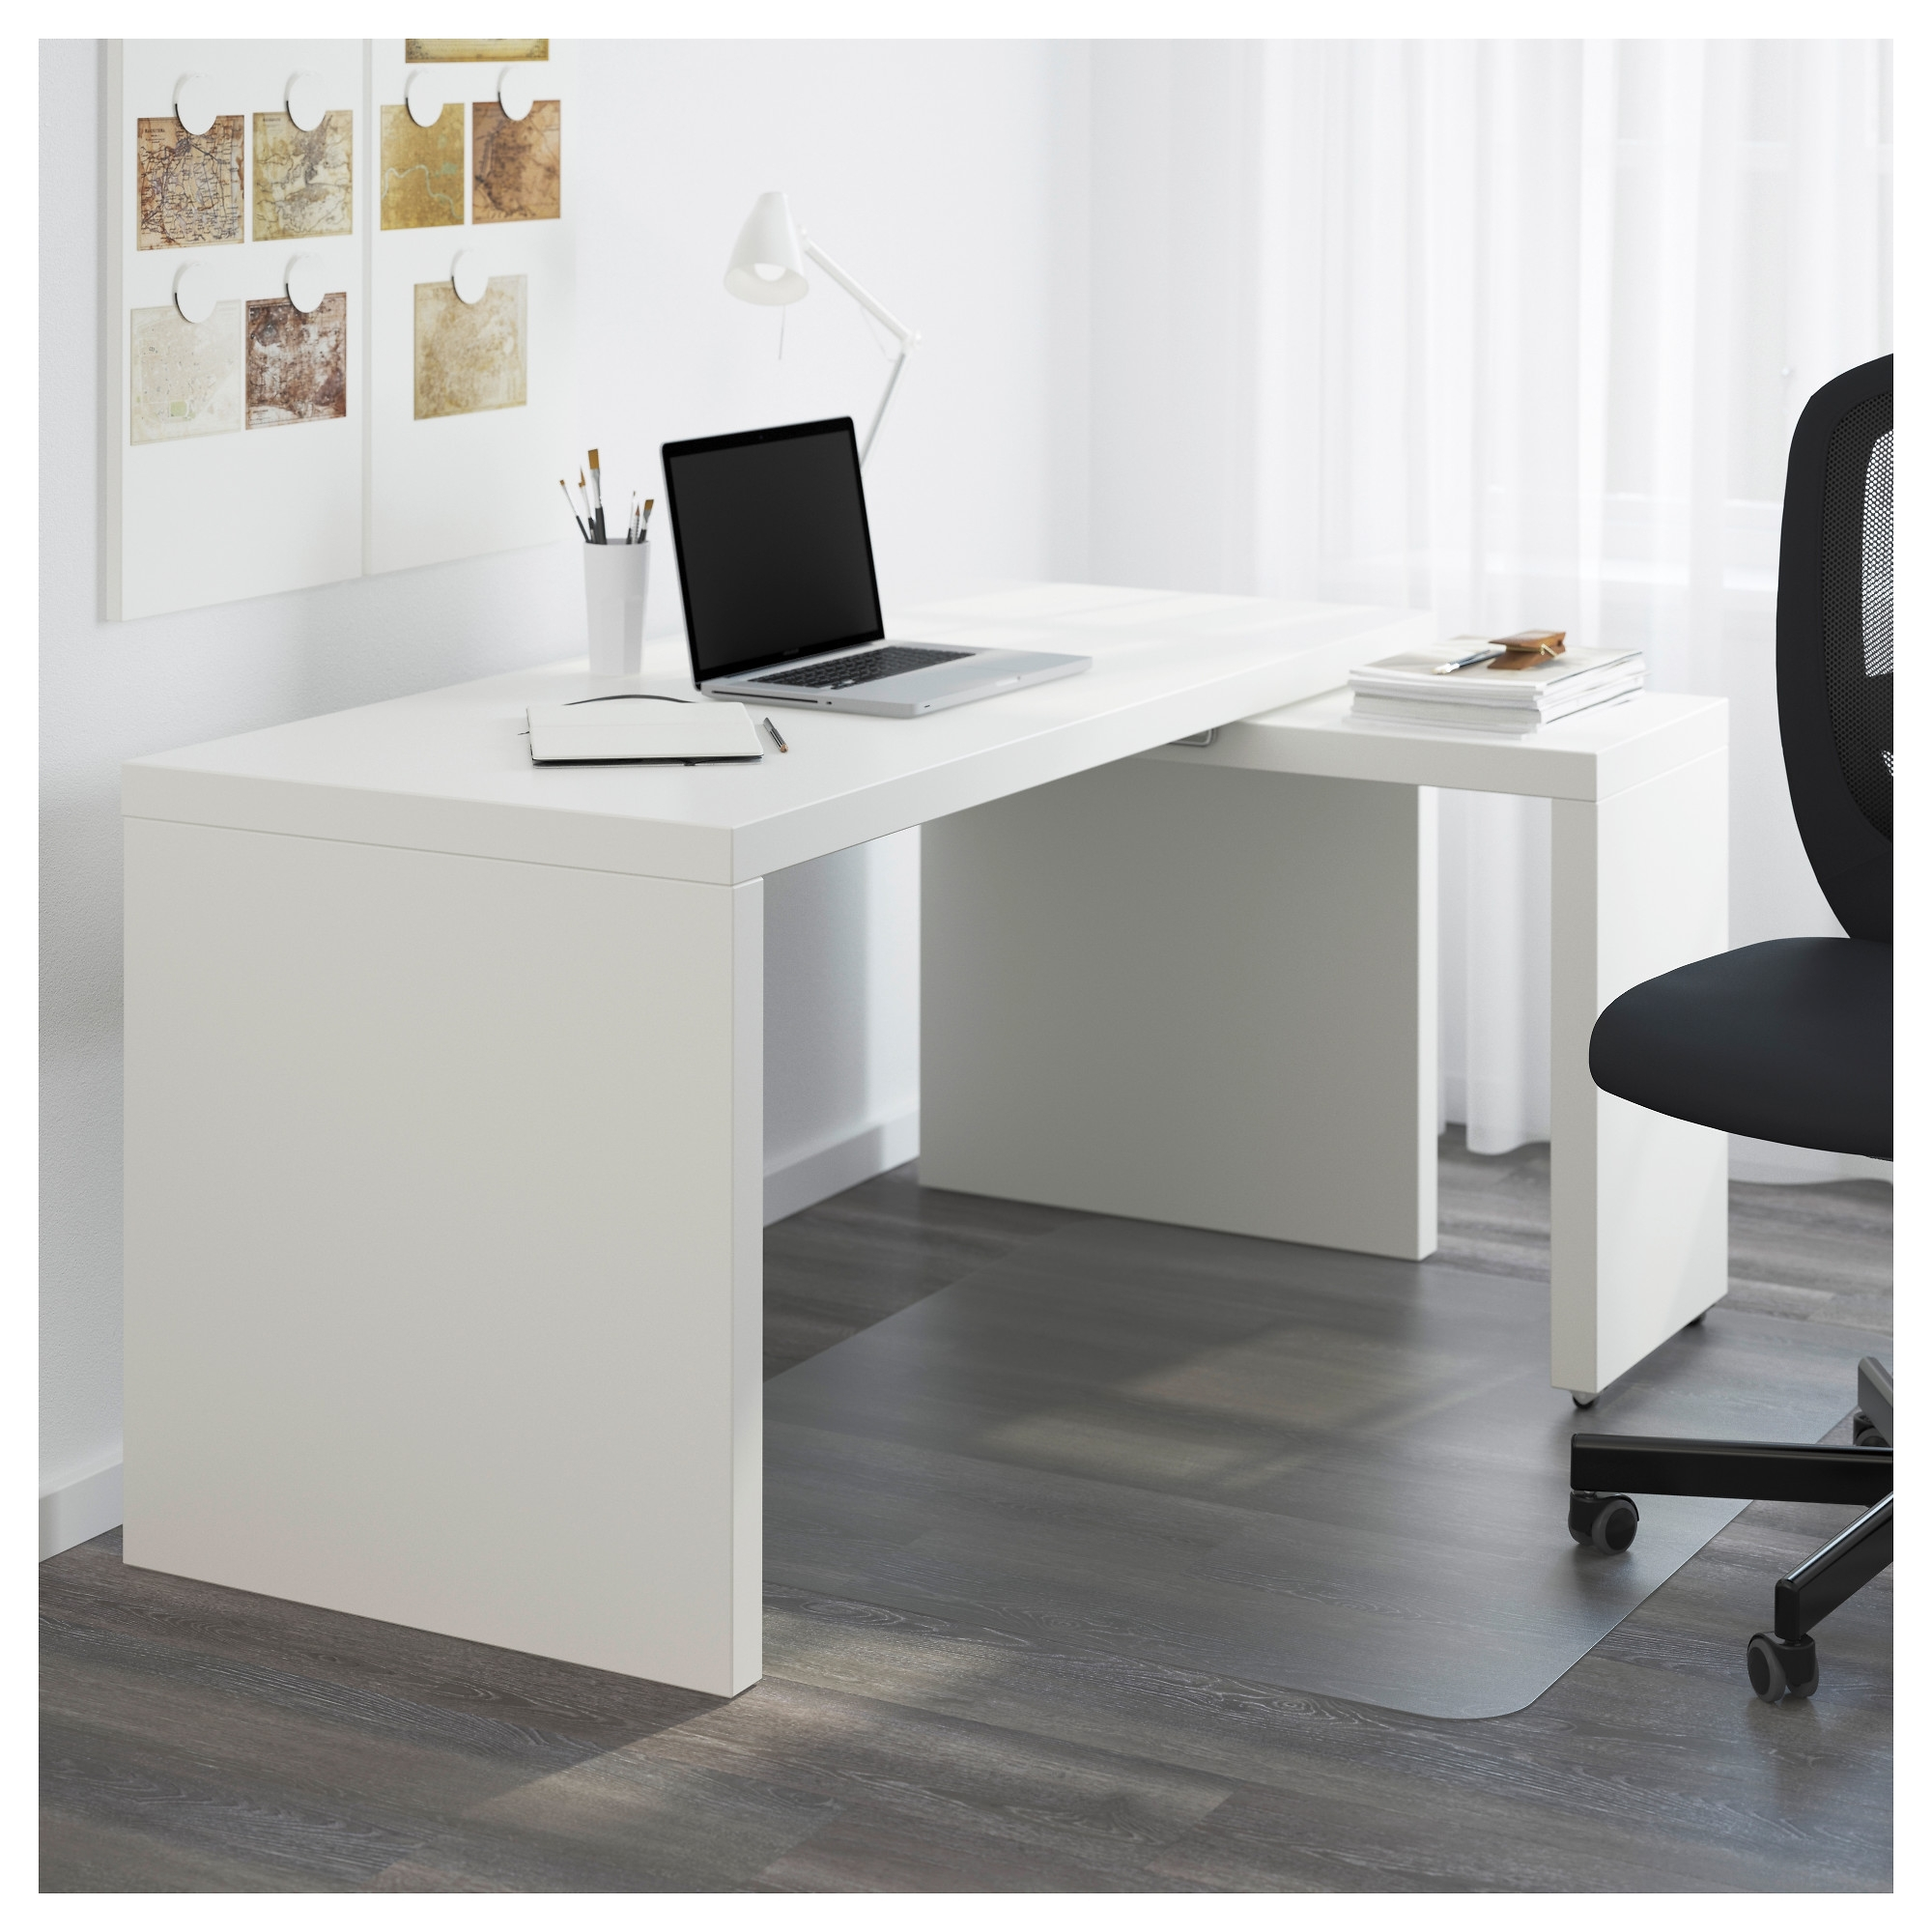 Malm Desk With Pull Out Panel – White – Ikea In Most Popular White Computer Desks (View 2 of 20)